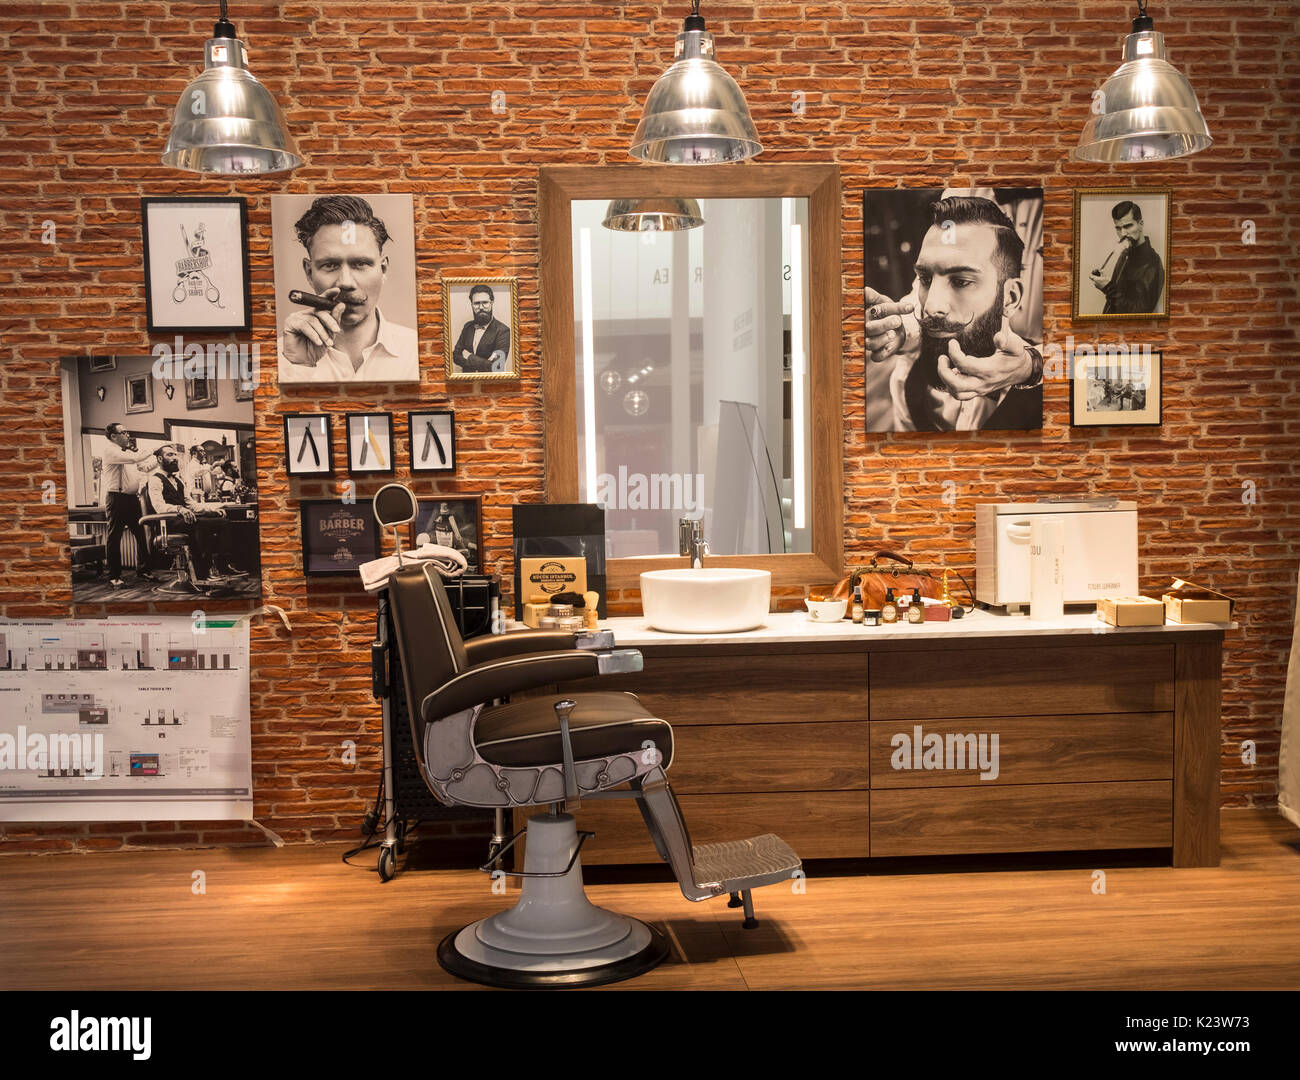 Berlin, Germany. 30th Aug, 2017. Exhibitors preparing stands prior to opening to the public on 1 Sept 2017. Mock-up of men's old fashioned barber shop on Panasonic Men's Grooming stand. IFA is one of the world's largest consumer electronics trade show. Credit: Iain Masterton/Alamy Live News - Stock Image